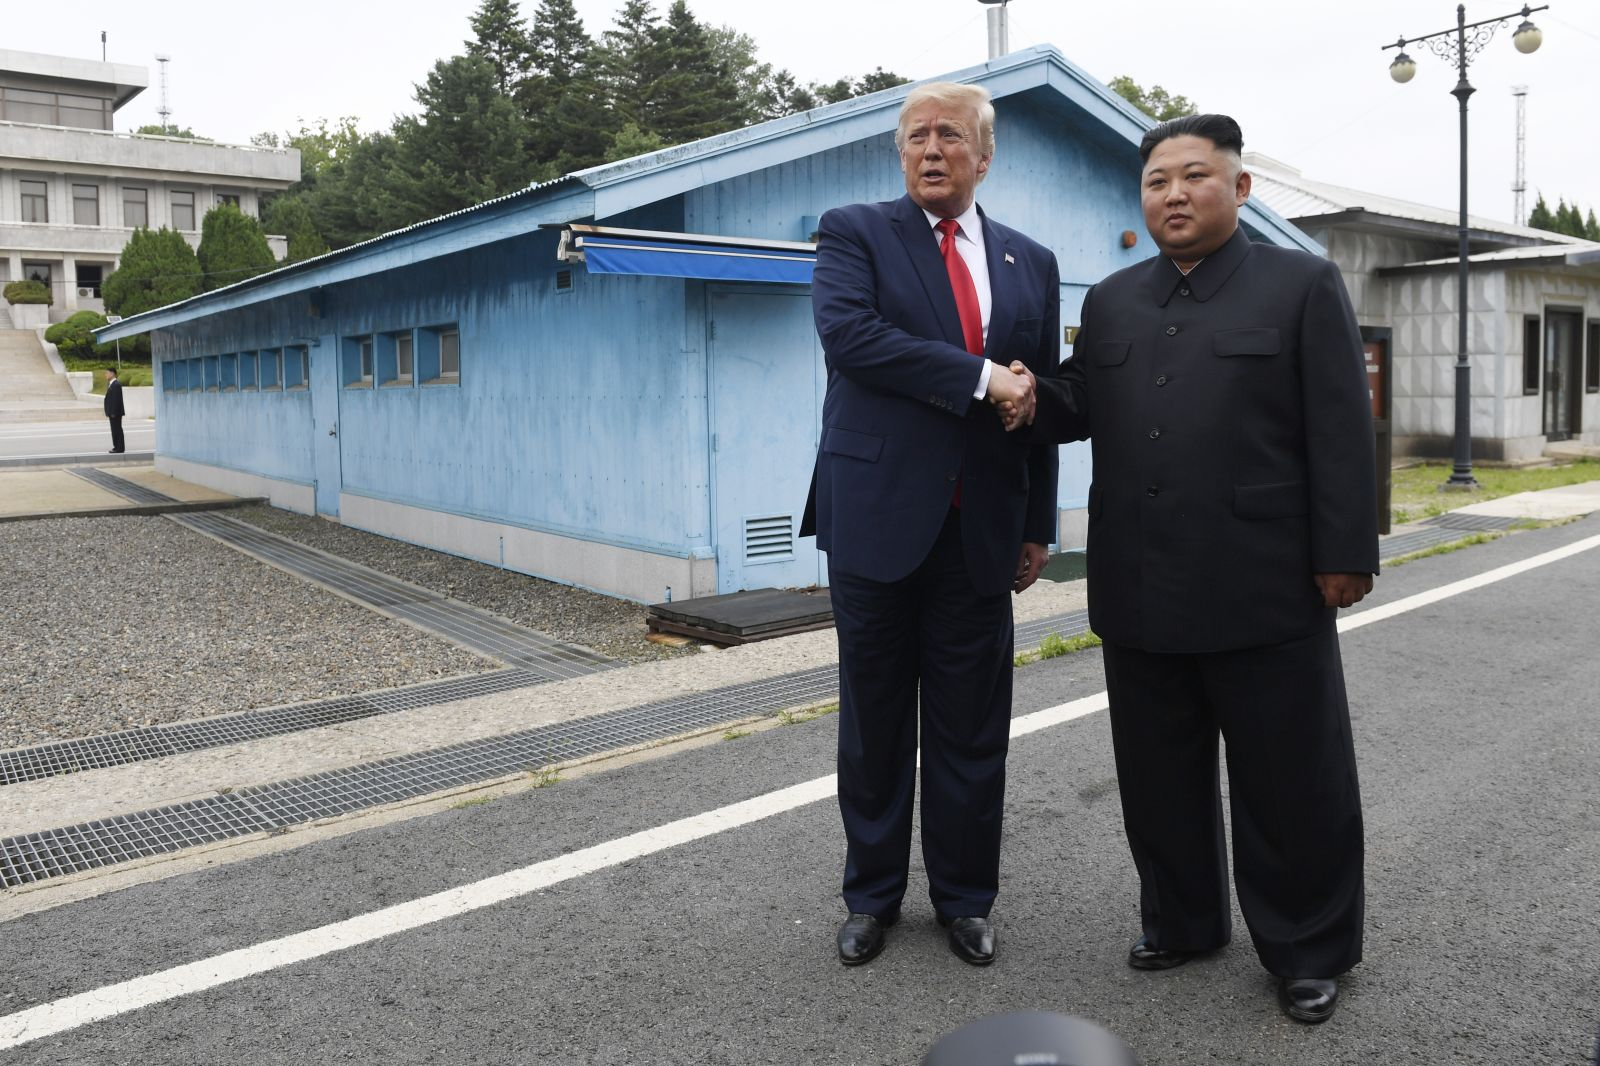 In Pictures: Historic meeting between Trump and Kim at the DMZ